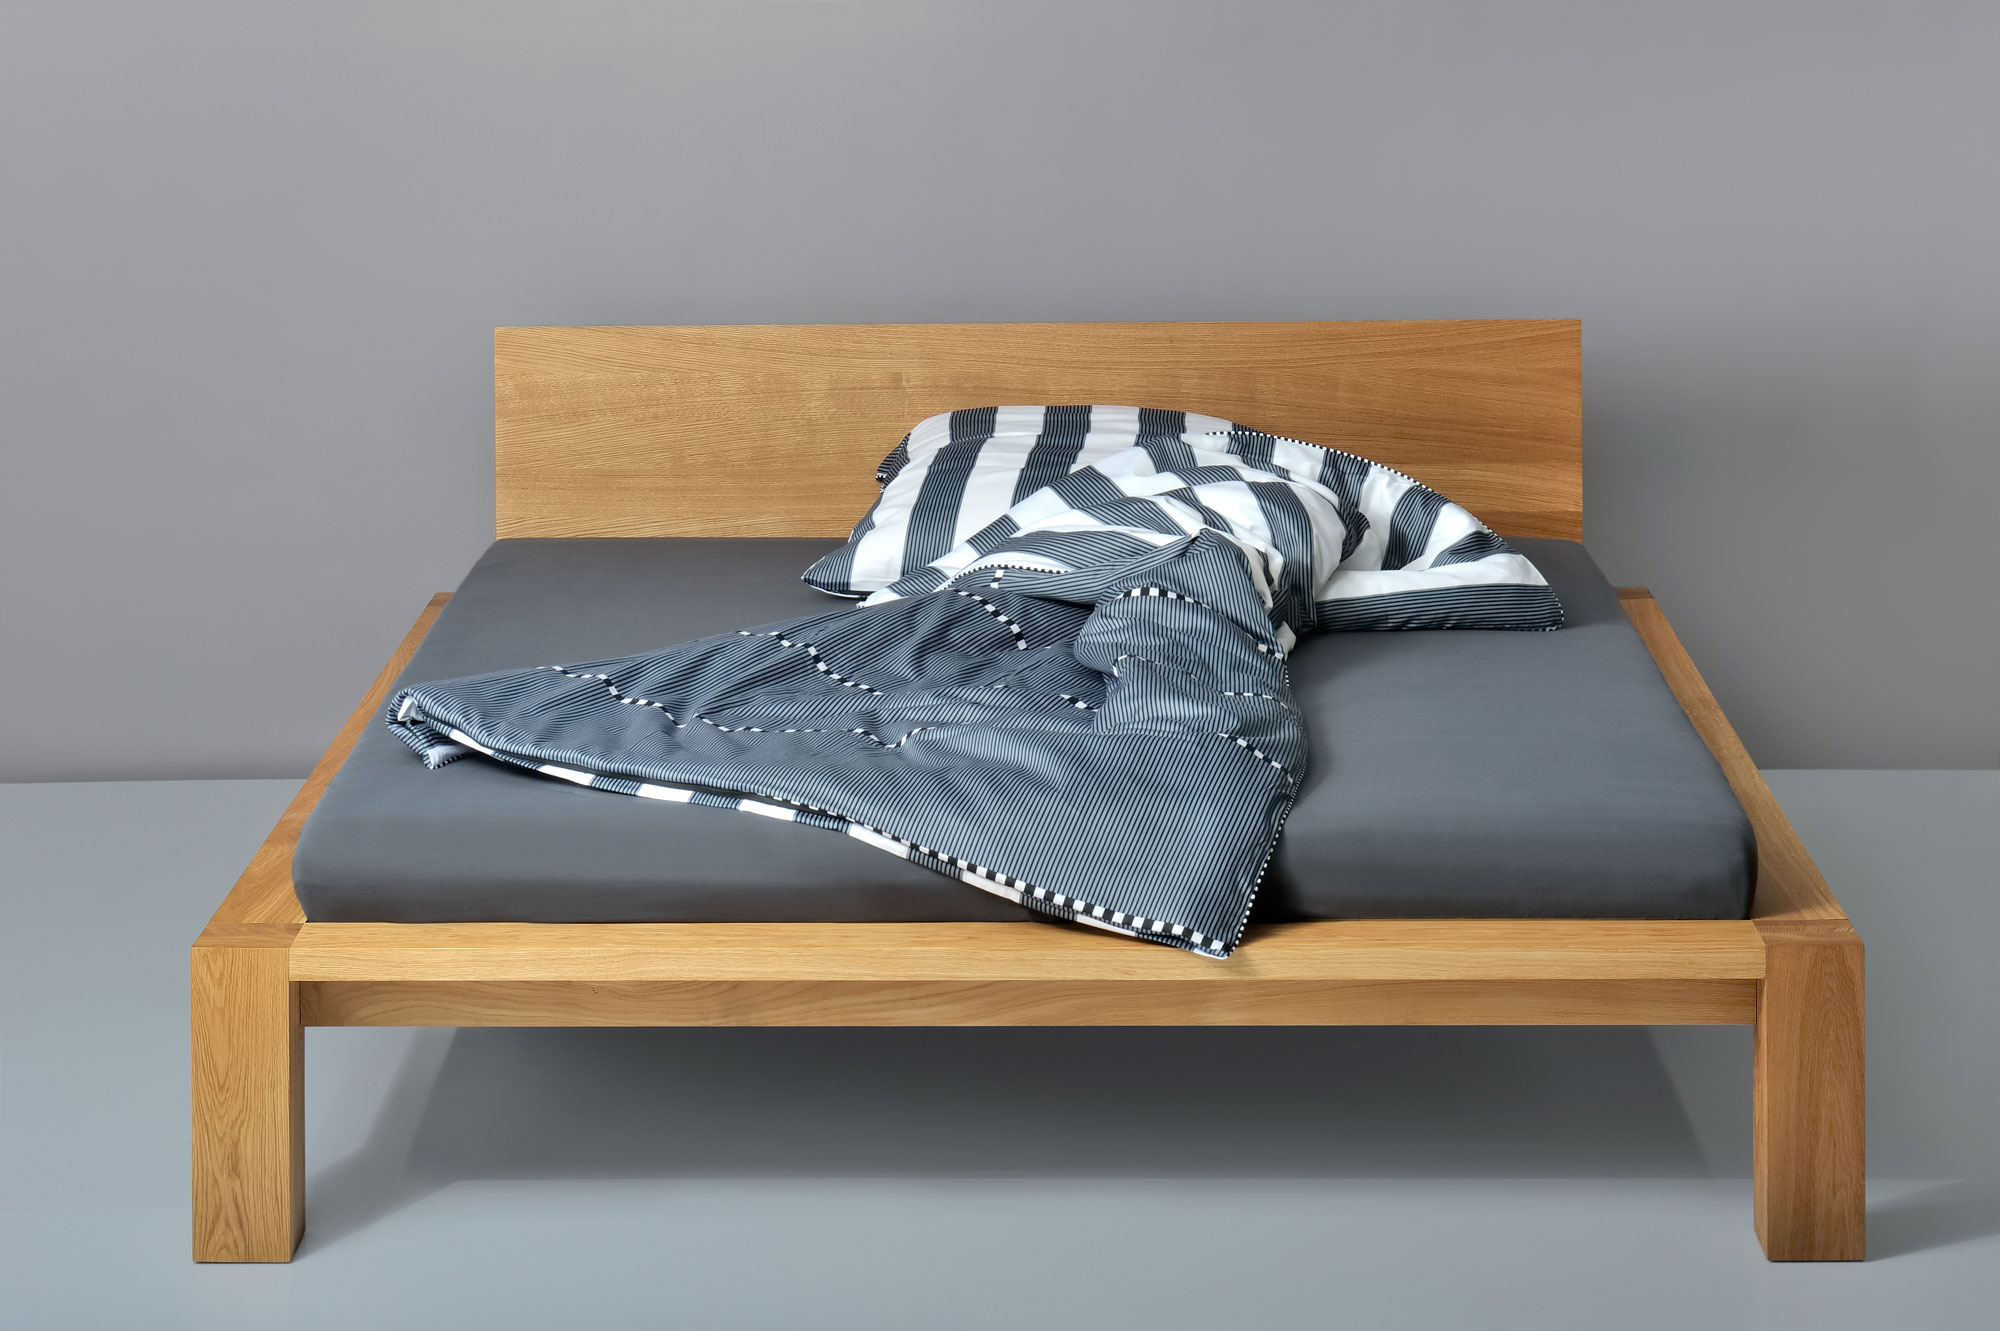 Rustic Oak Bed TAURUS pc1686 custom made in solid wood by vitamin design